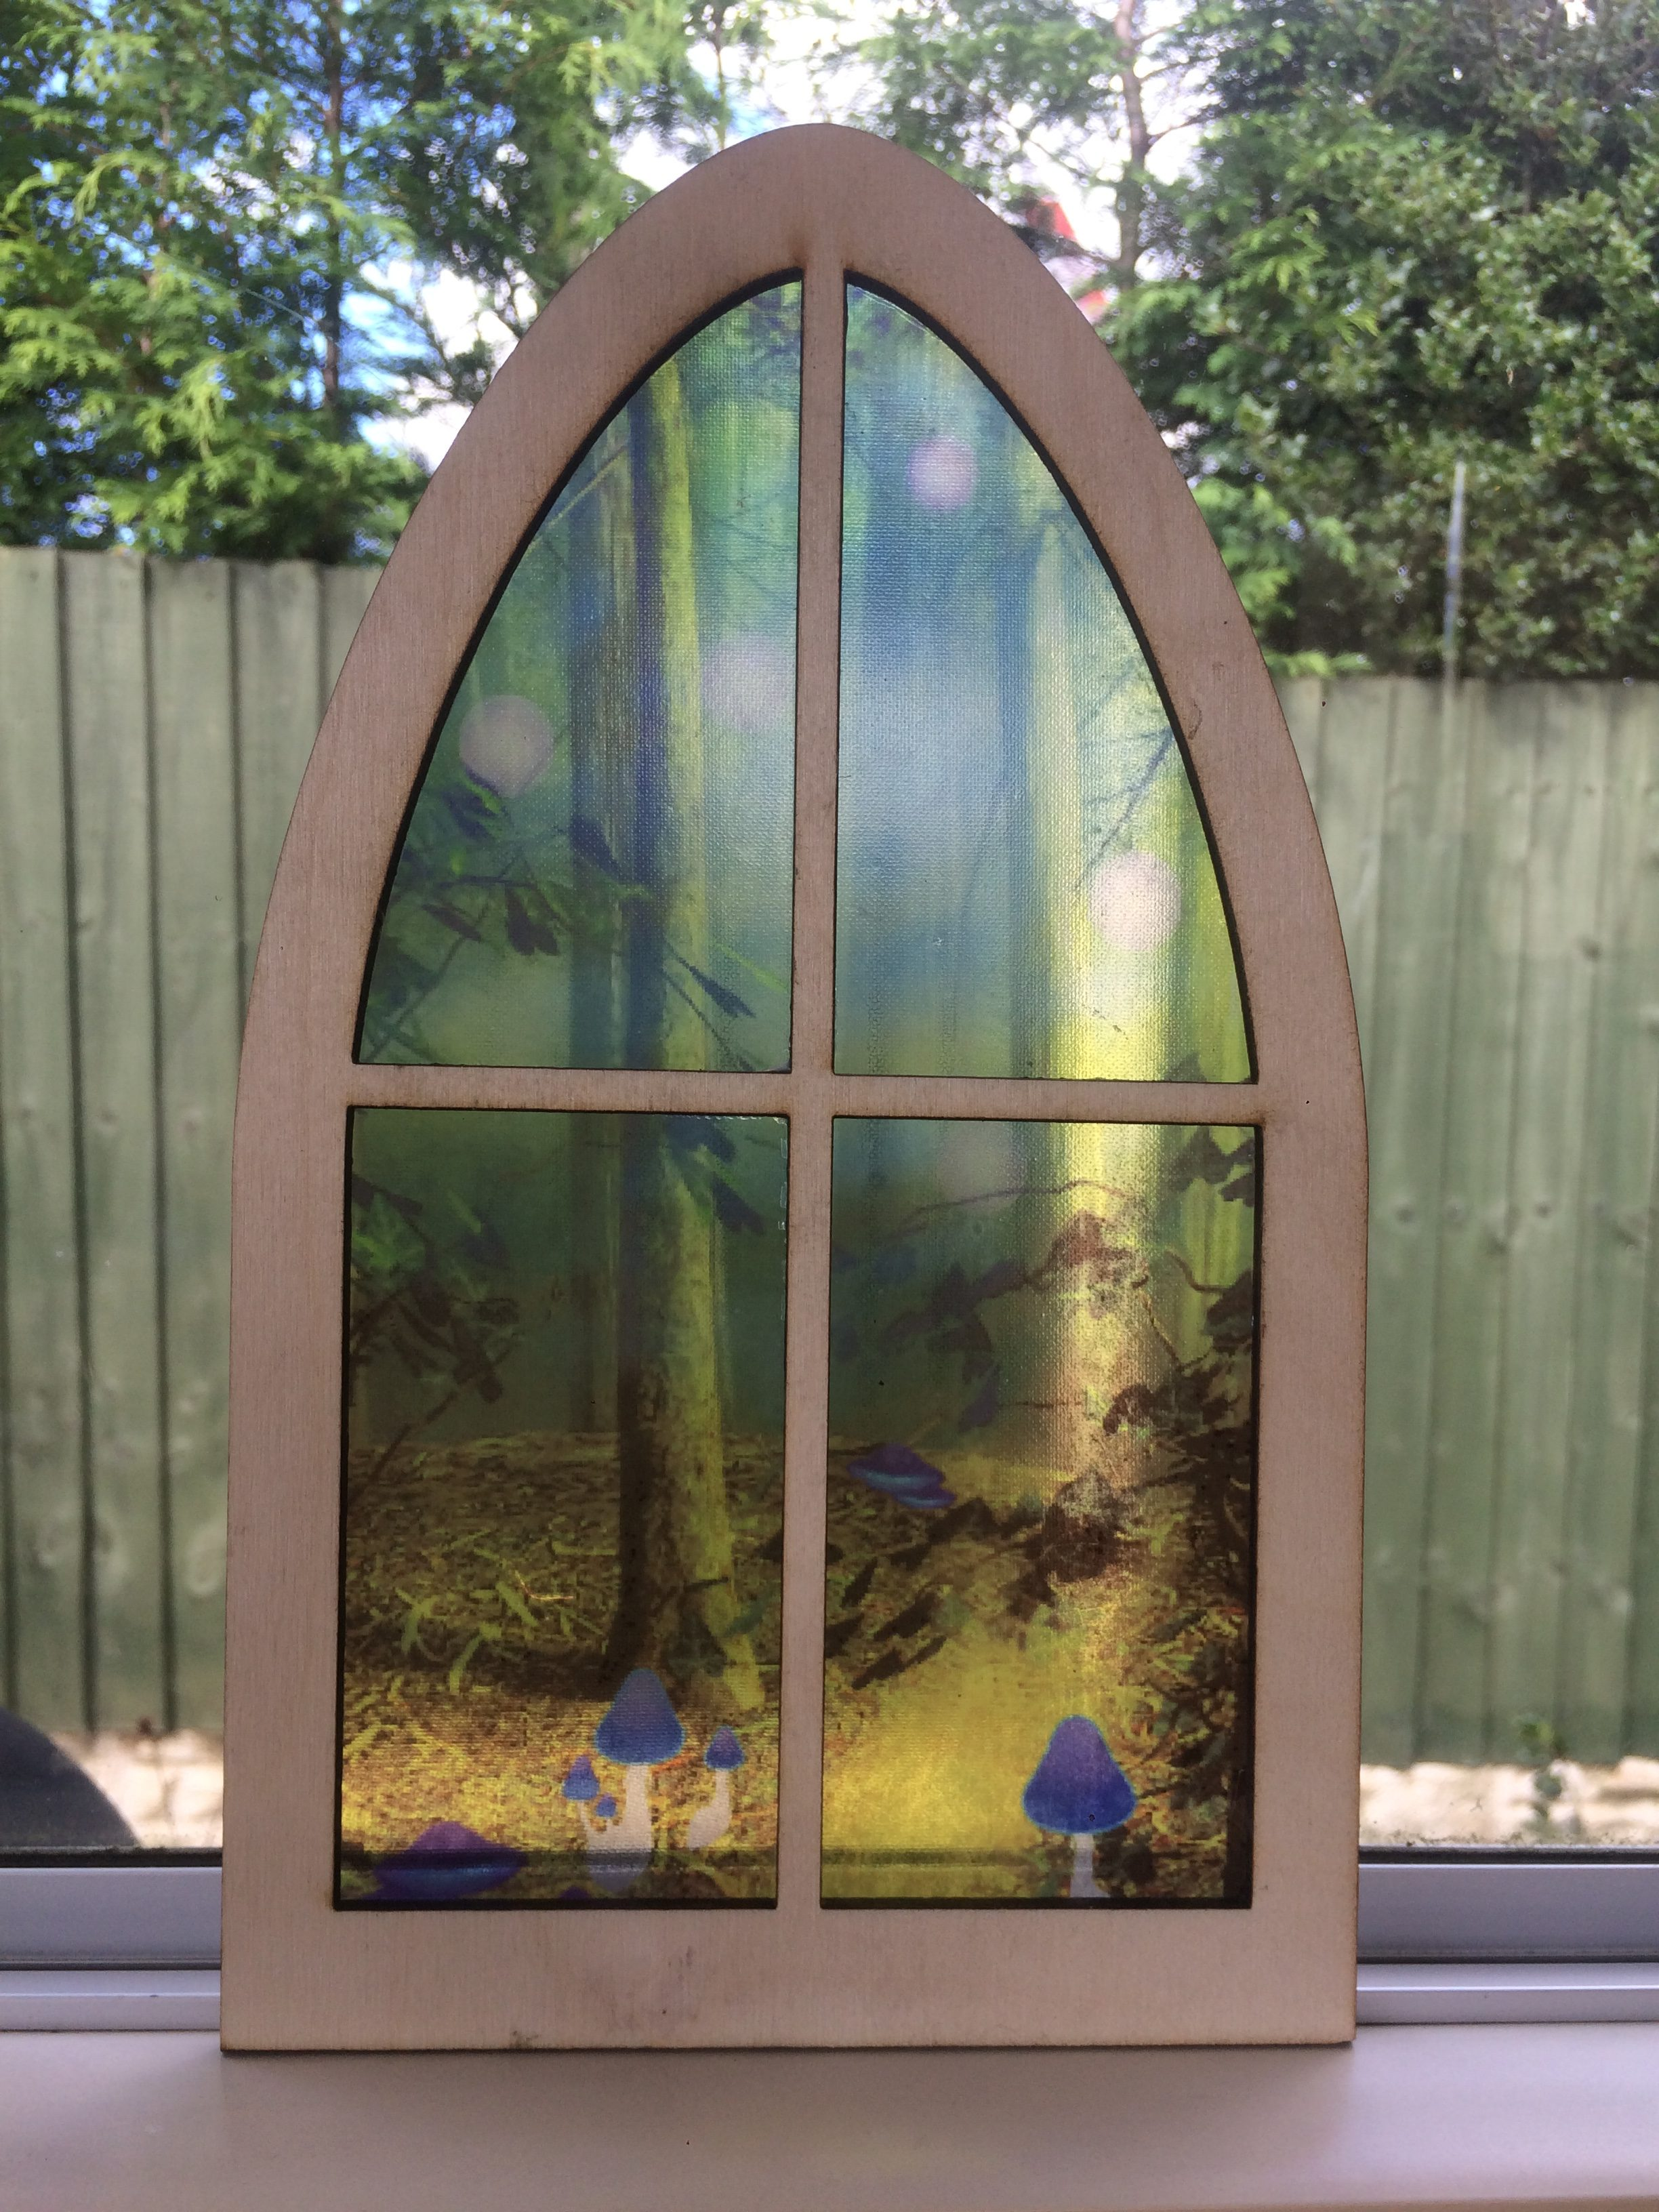 Extra Large Enchanted Stained Glass Fairy Window - A Portal into a Magical  Fairy Land by Secret Fairy Door